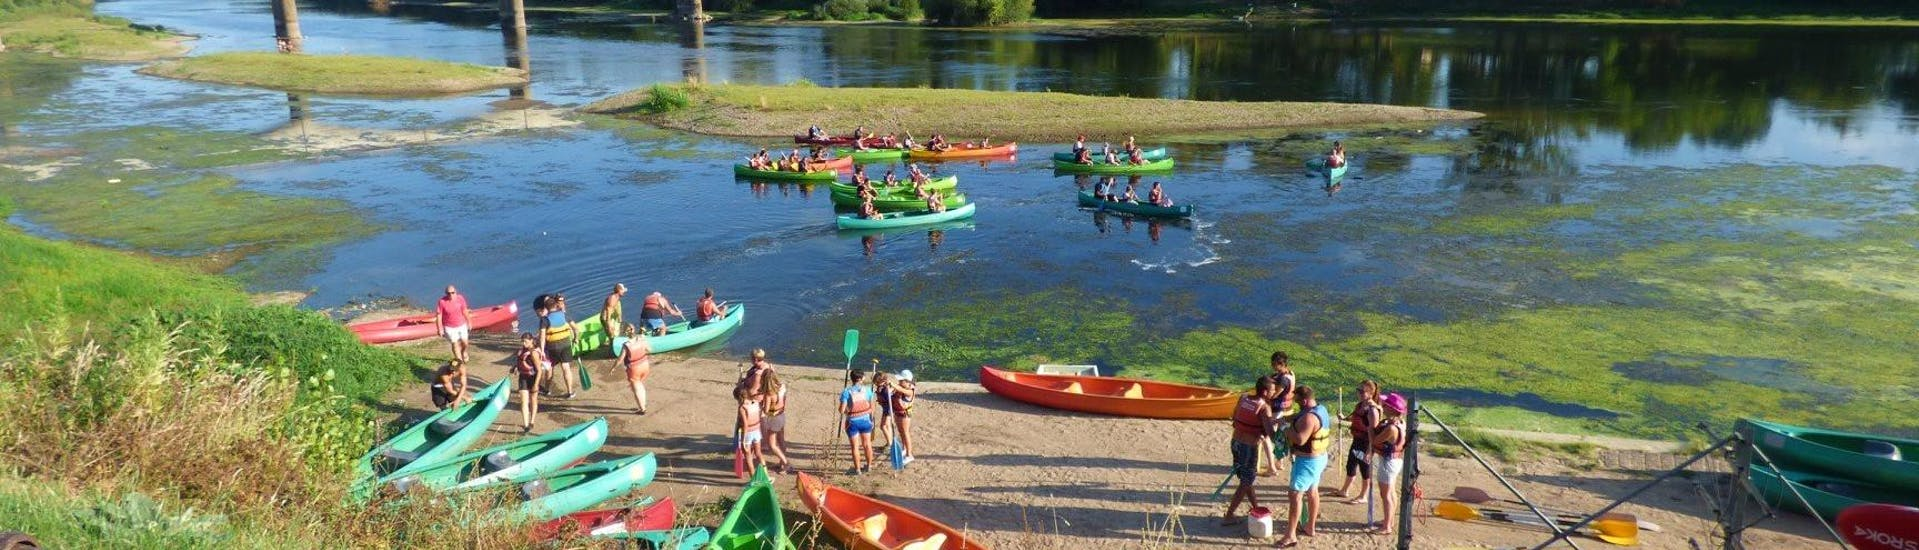 Holidaymakers are getting into the water for their canoeing tour on the Dordogne river with Canoe Kayak Port-Sainte-Foy.